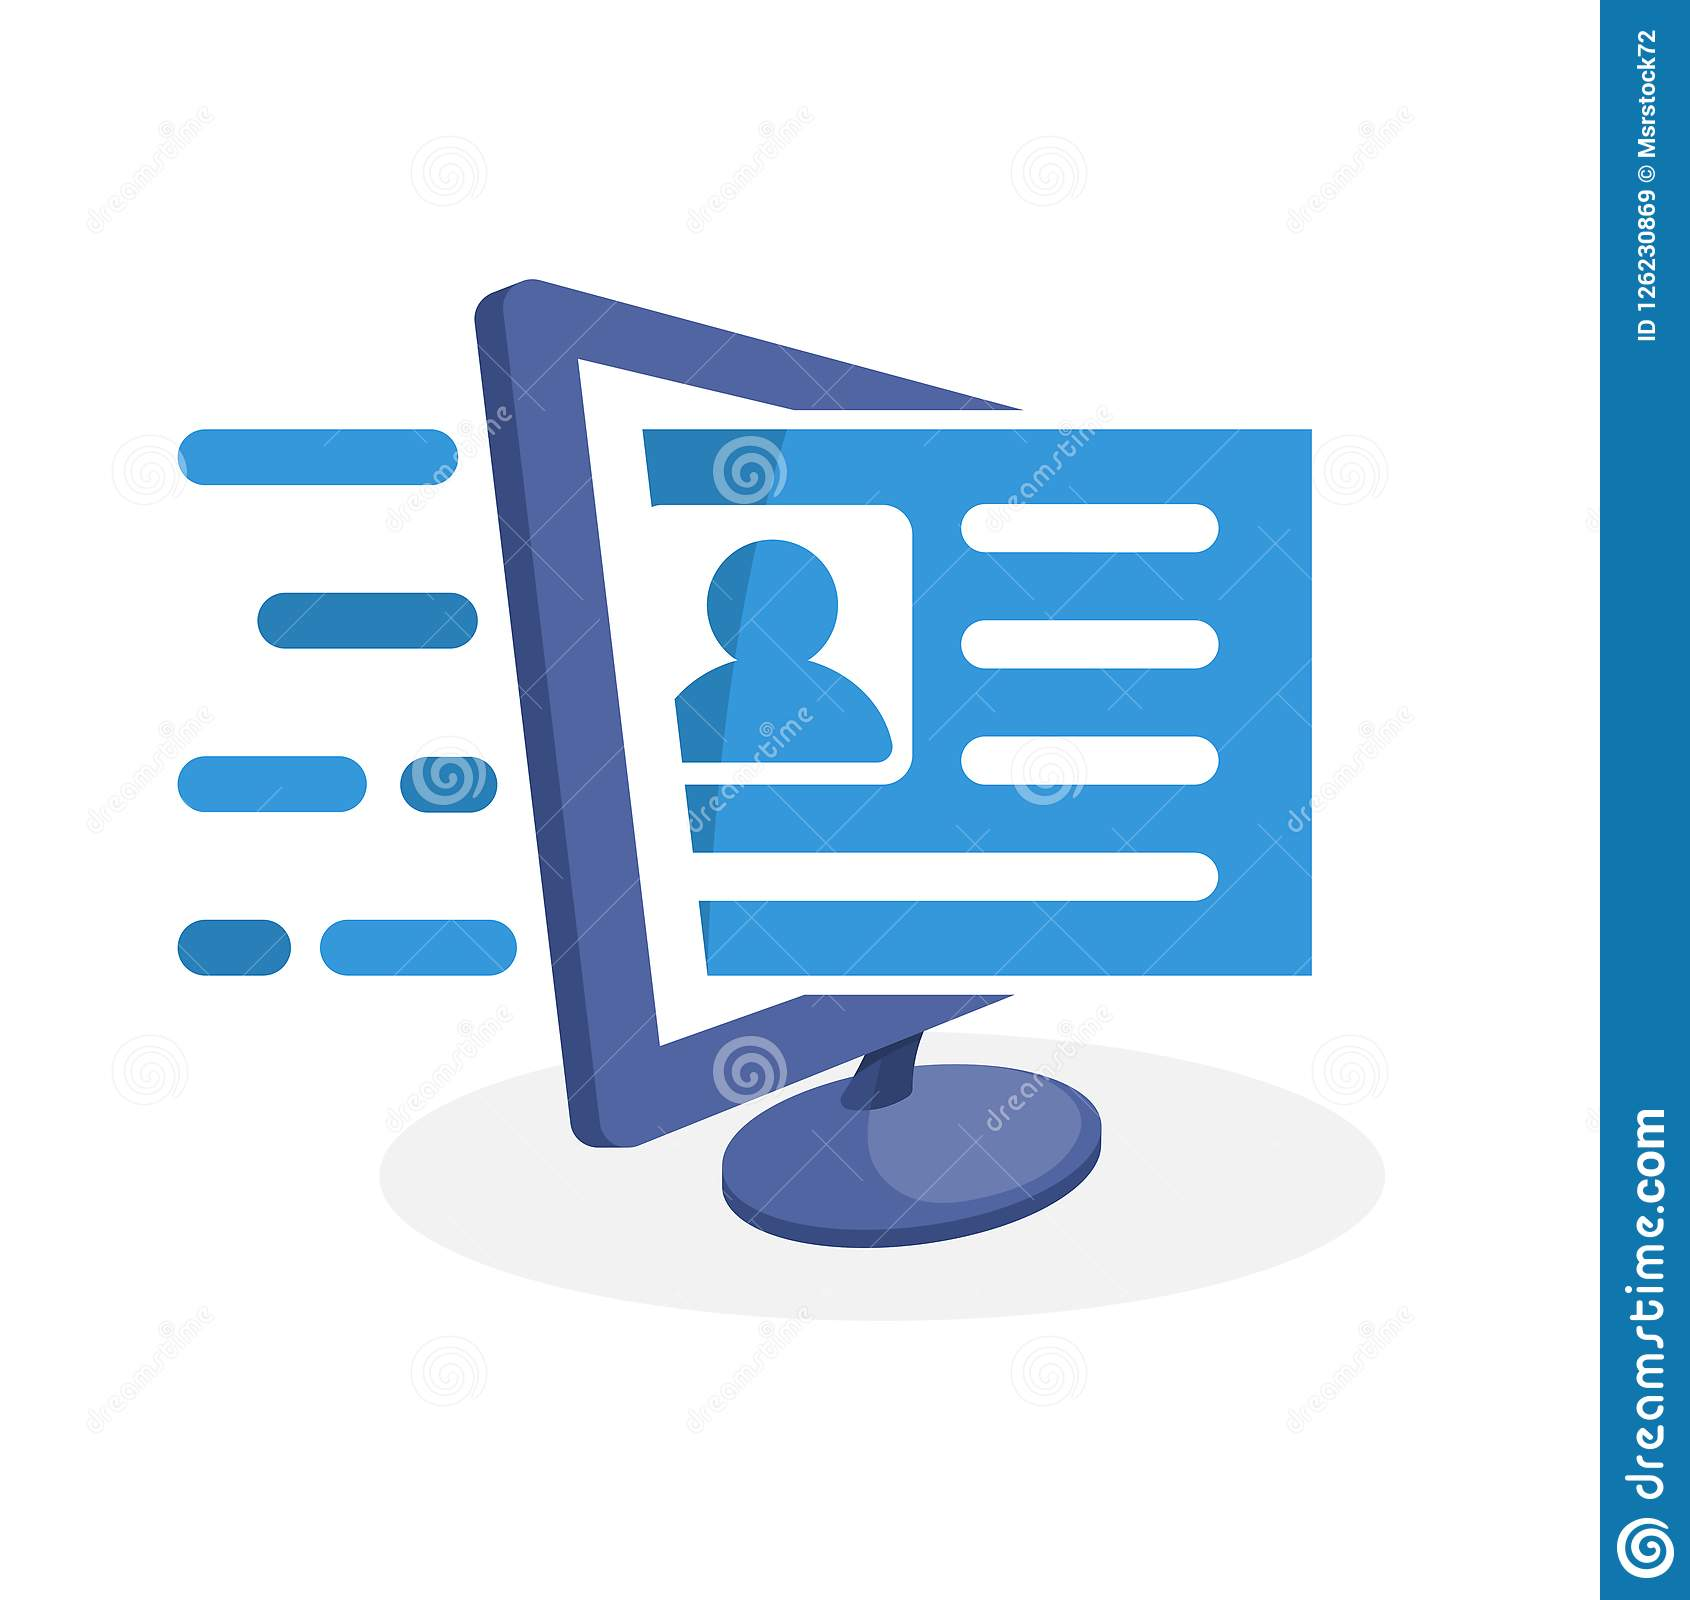 Vector illustration icon with digital media concept about online registration